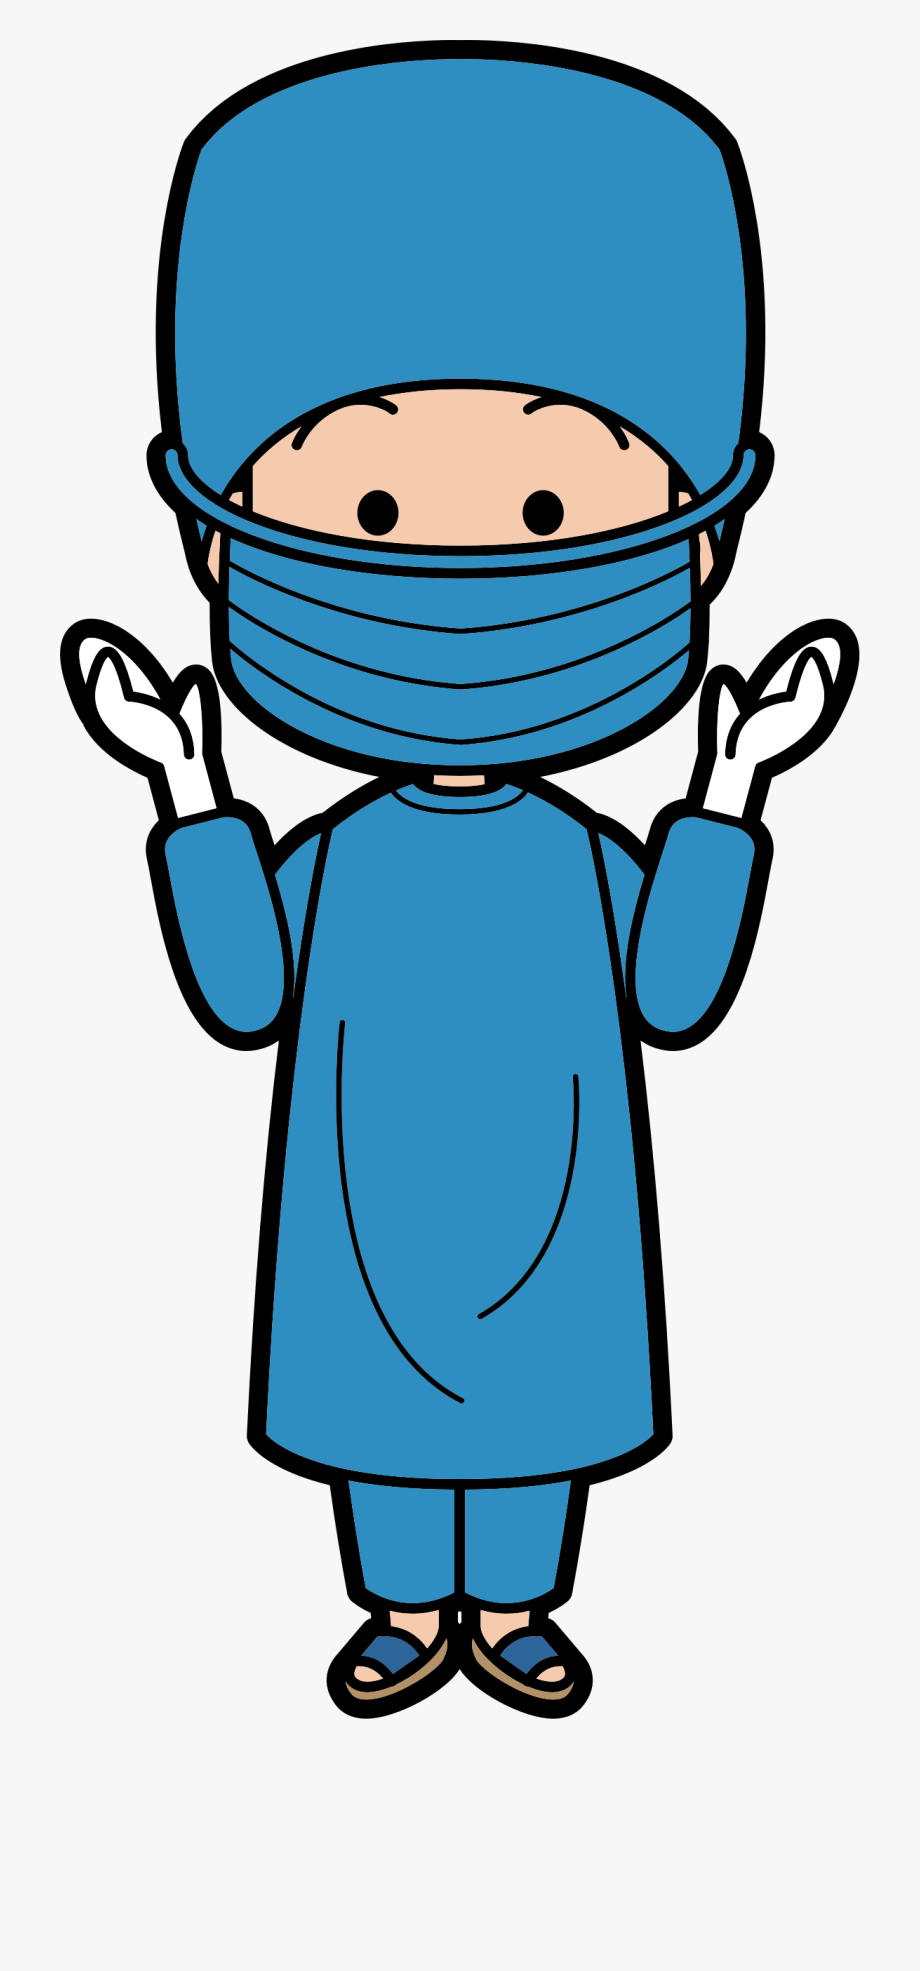 Surgery Clipart At Getdrawings.